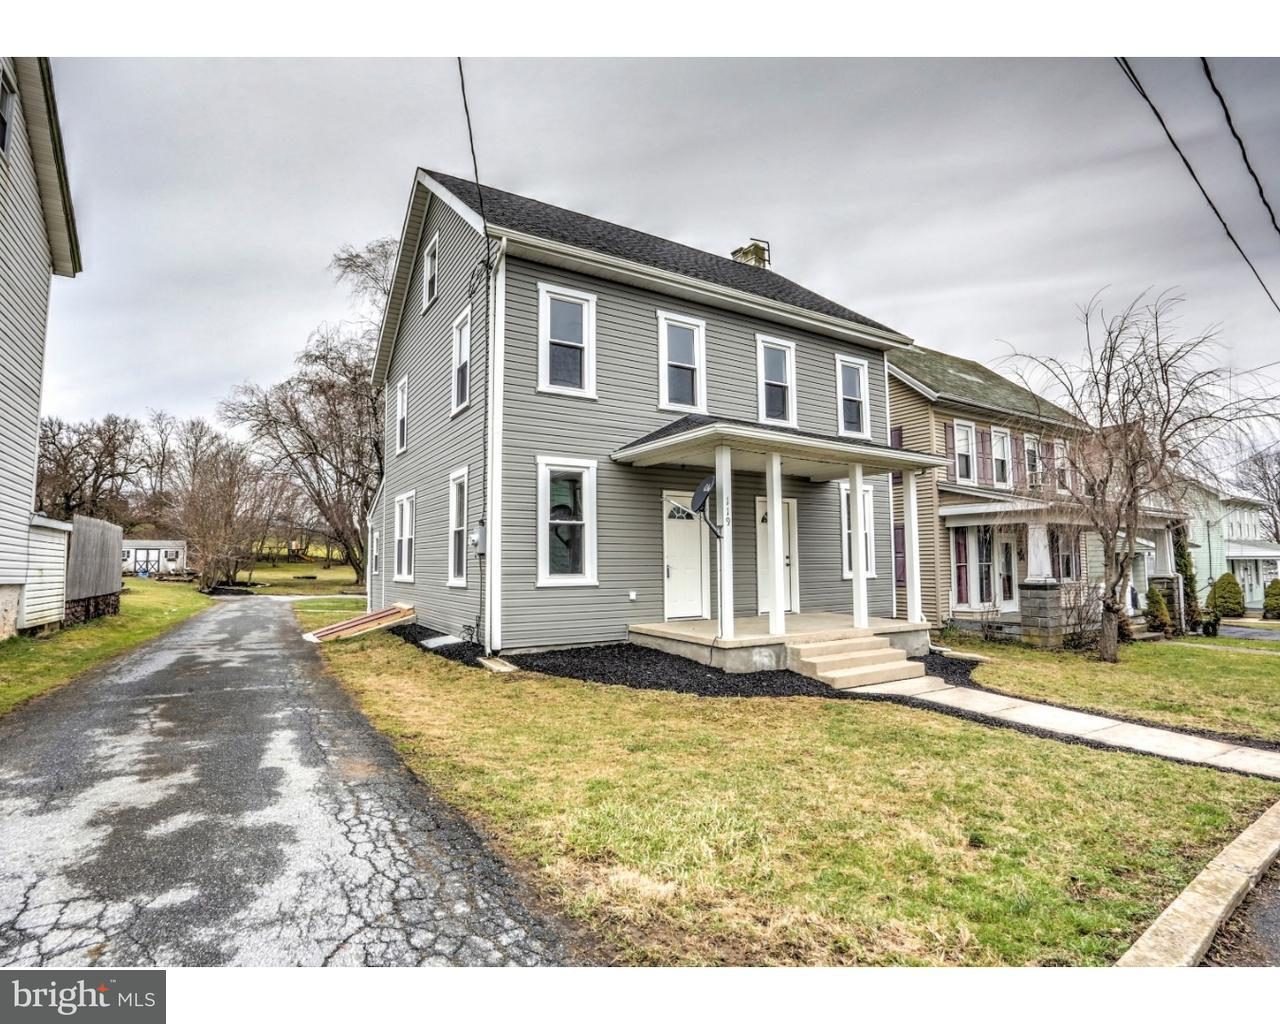 119 SPRING GROVE RD, EAST EARL - Listed at $194,900, EAST EARL